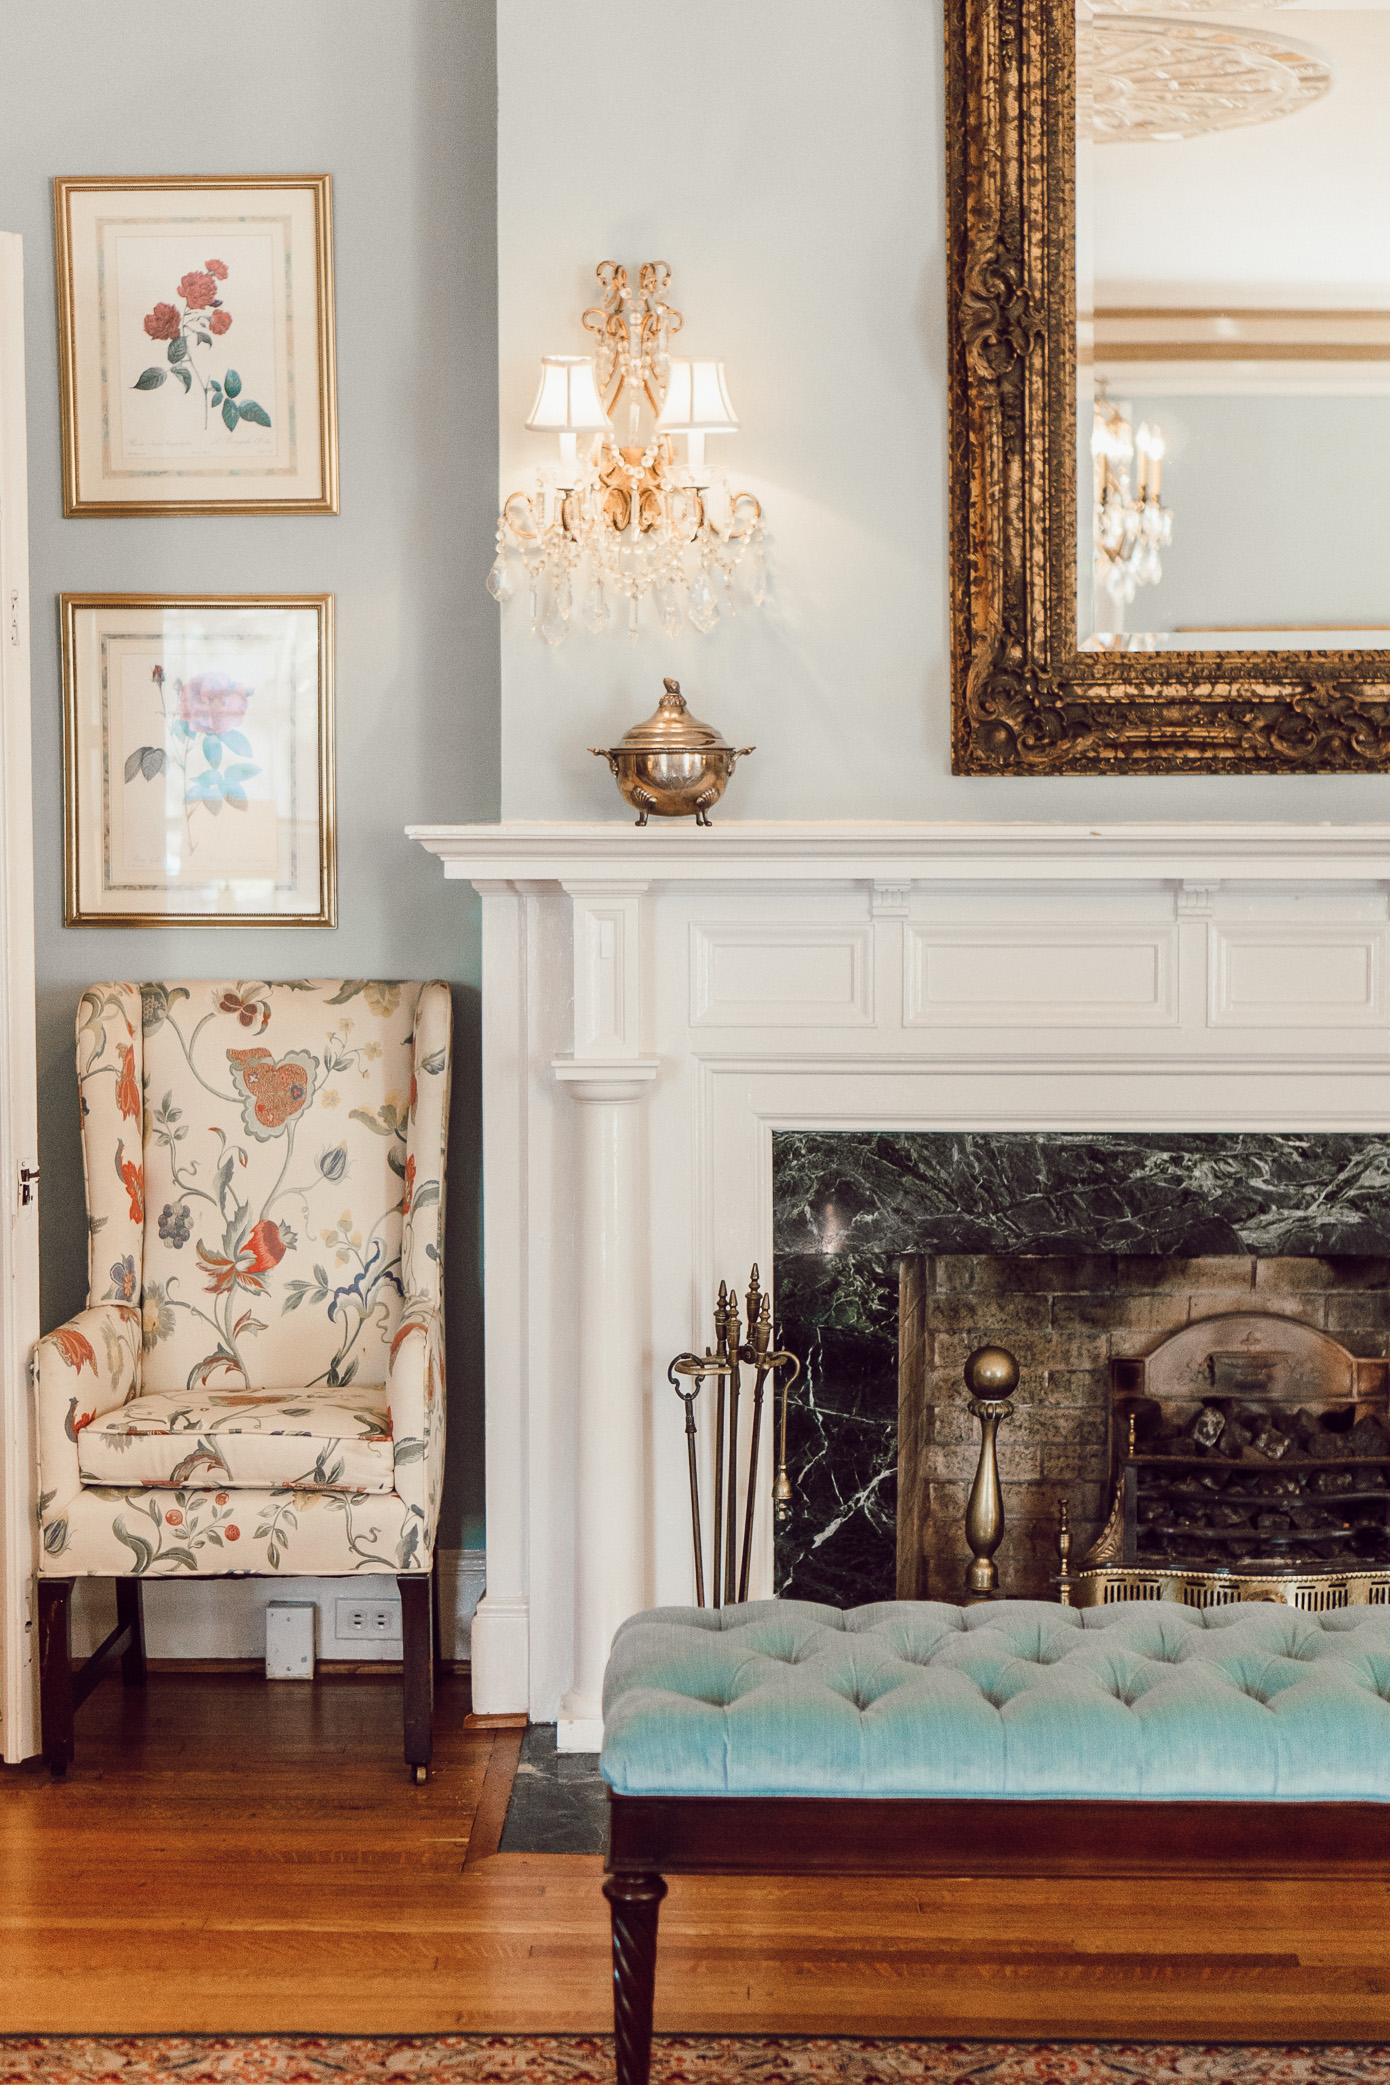 North Carolina Historic Bed & Breakfast | The Morehead Inn Charlotte NC Bed & Breakfast featured on Louella Reese